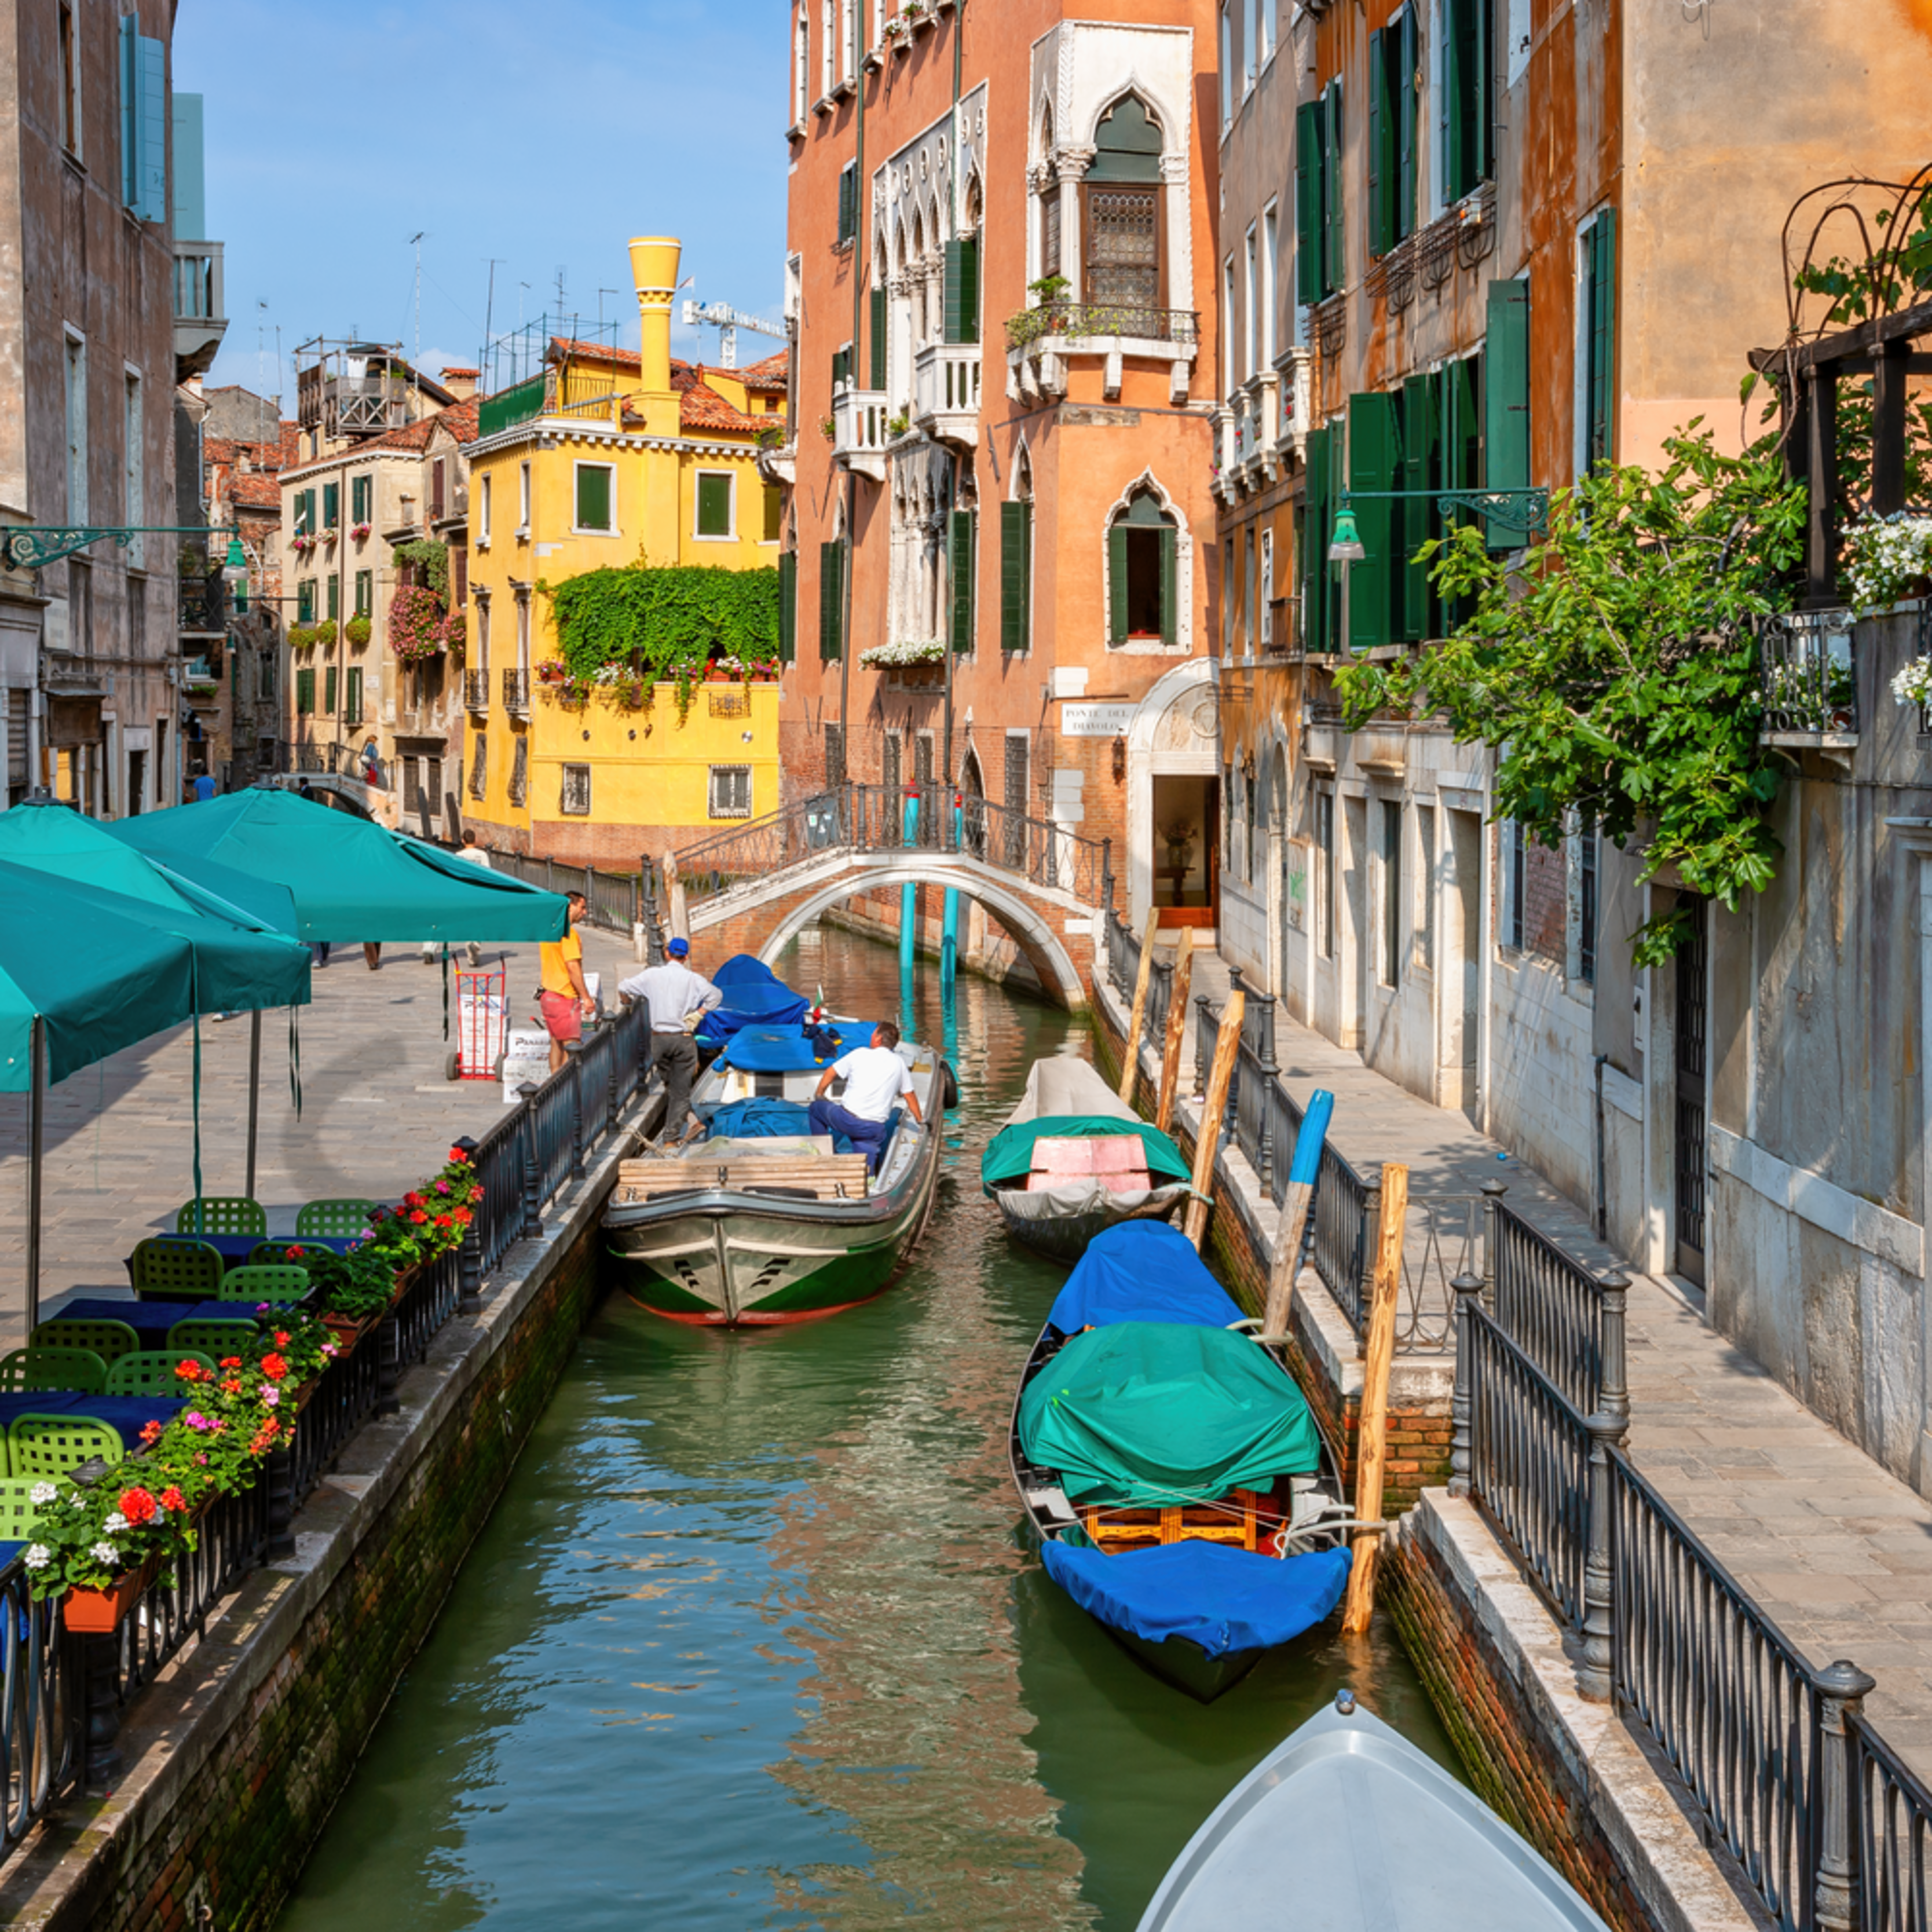 Venice and canal italy y3tz2m